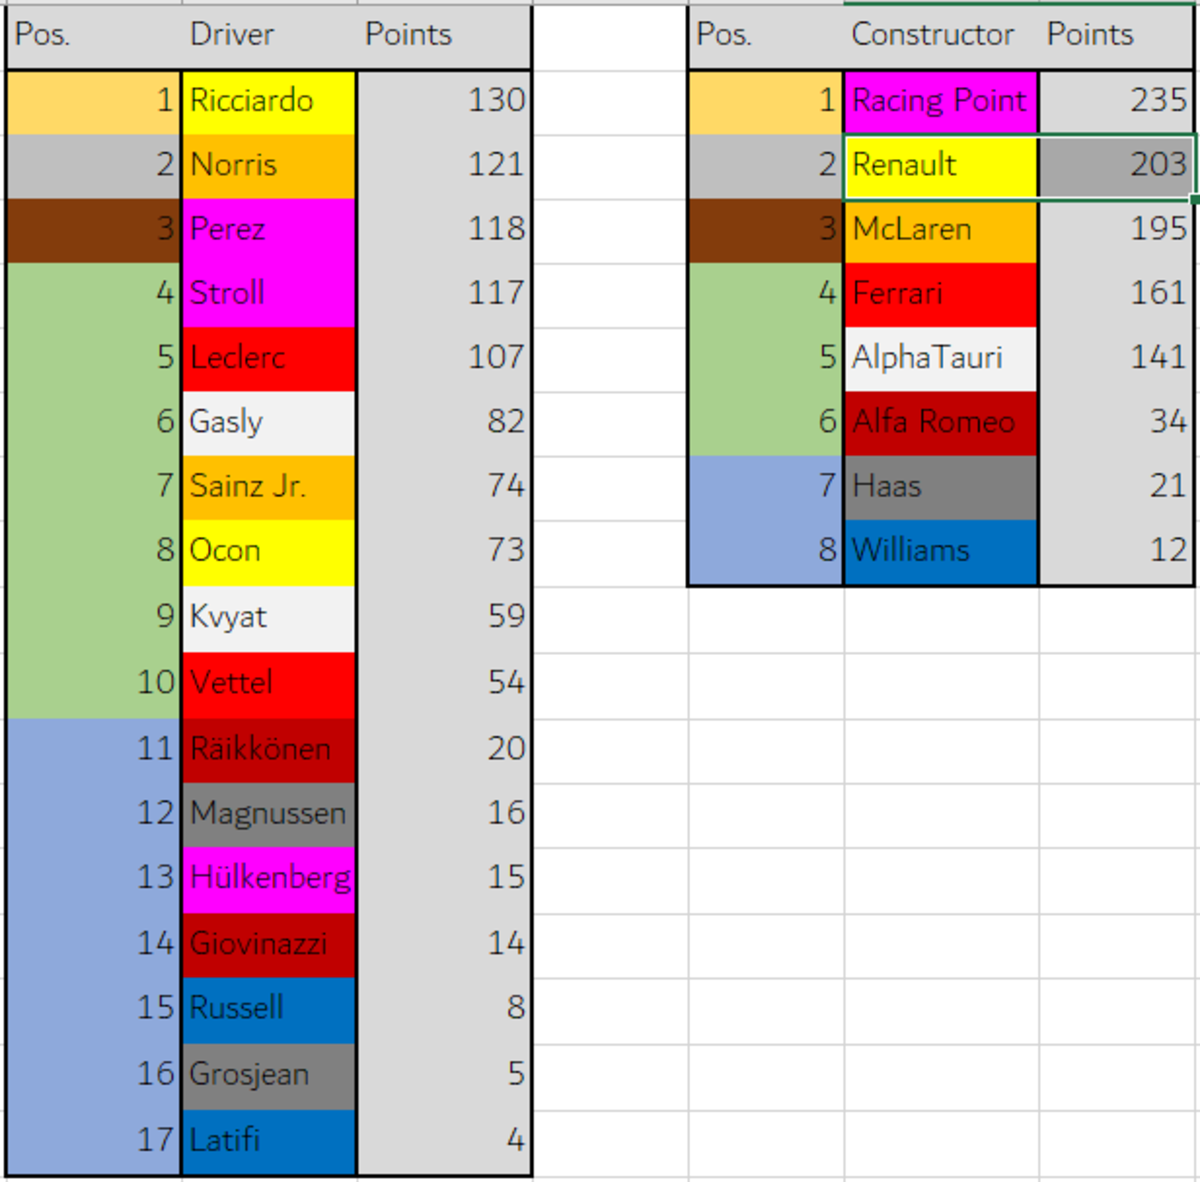 2020 Formula 1.5 Standings After Russian Grand Prix. join list: Motorsports (192 subs)Mention History.. Damn i hoped haas wouöd be better this season but how it looks they wont be there for much longer